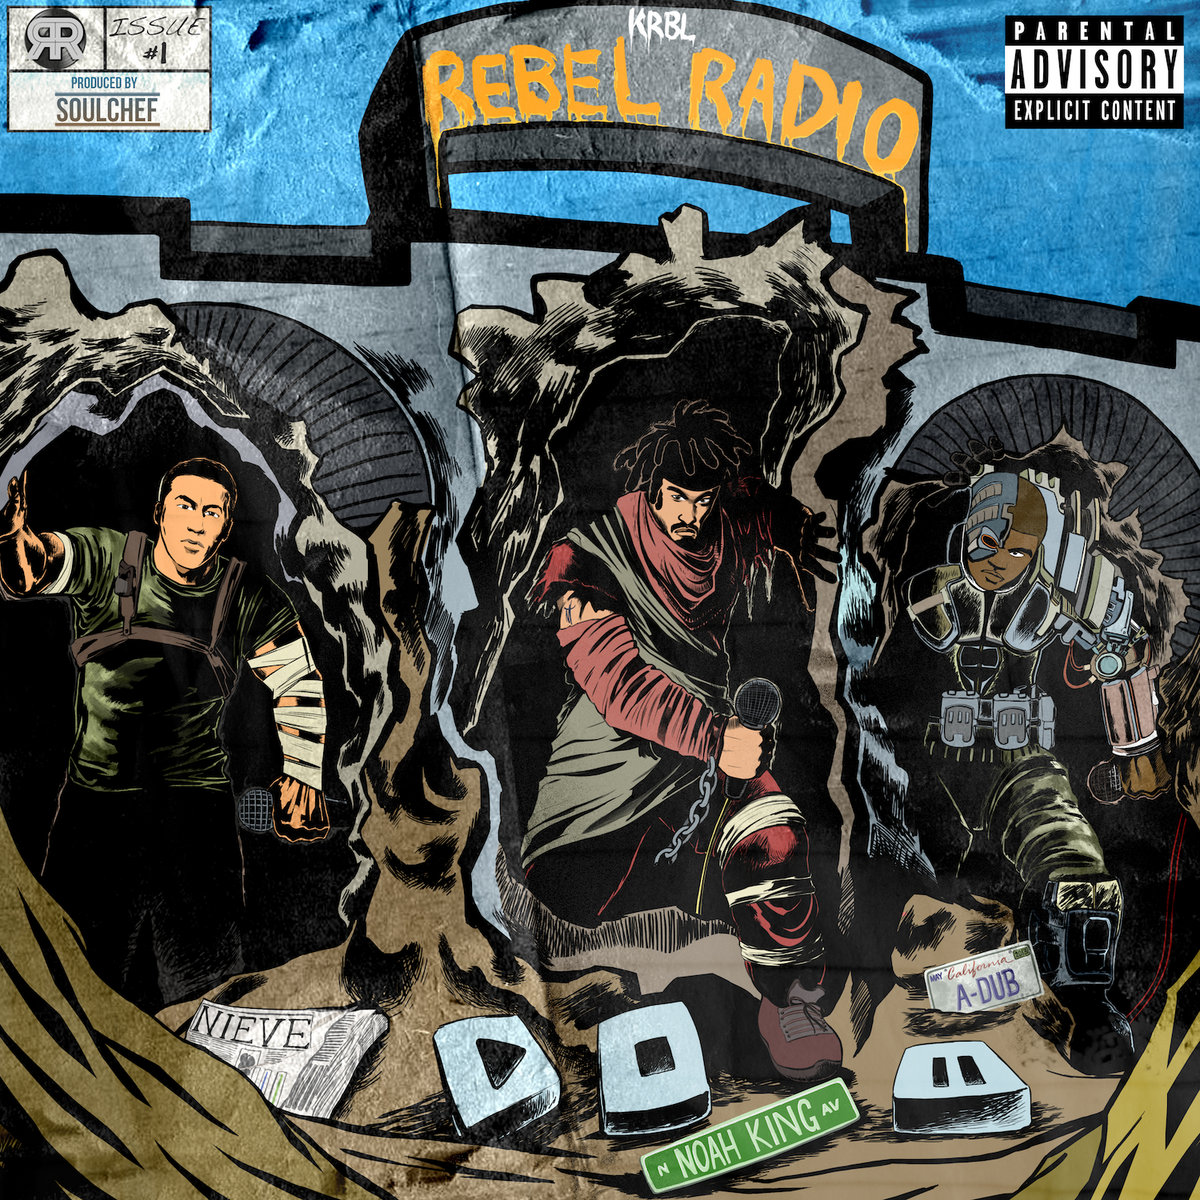 Streaming: KRBL Rebel Radio - KRBL Rebel Radio